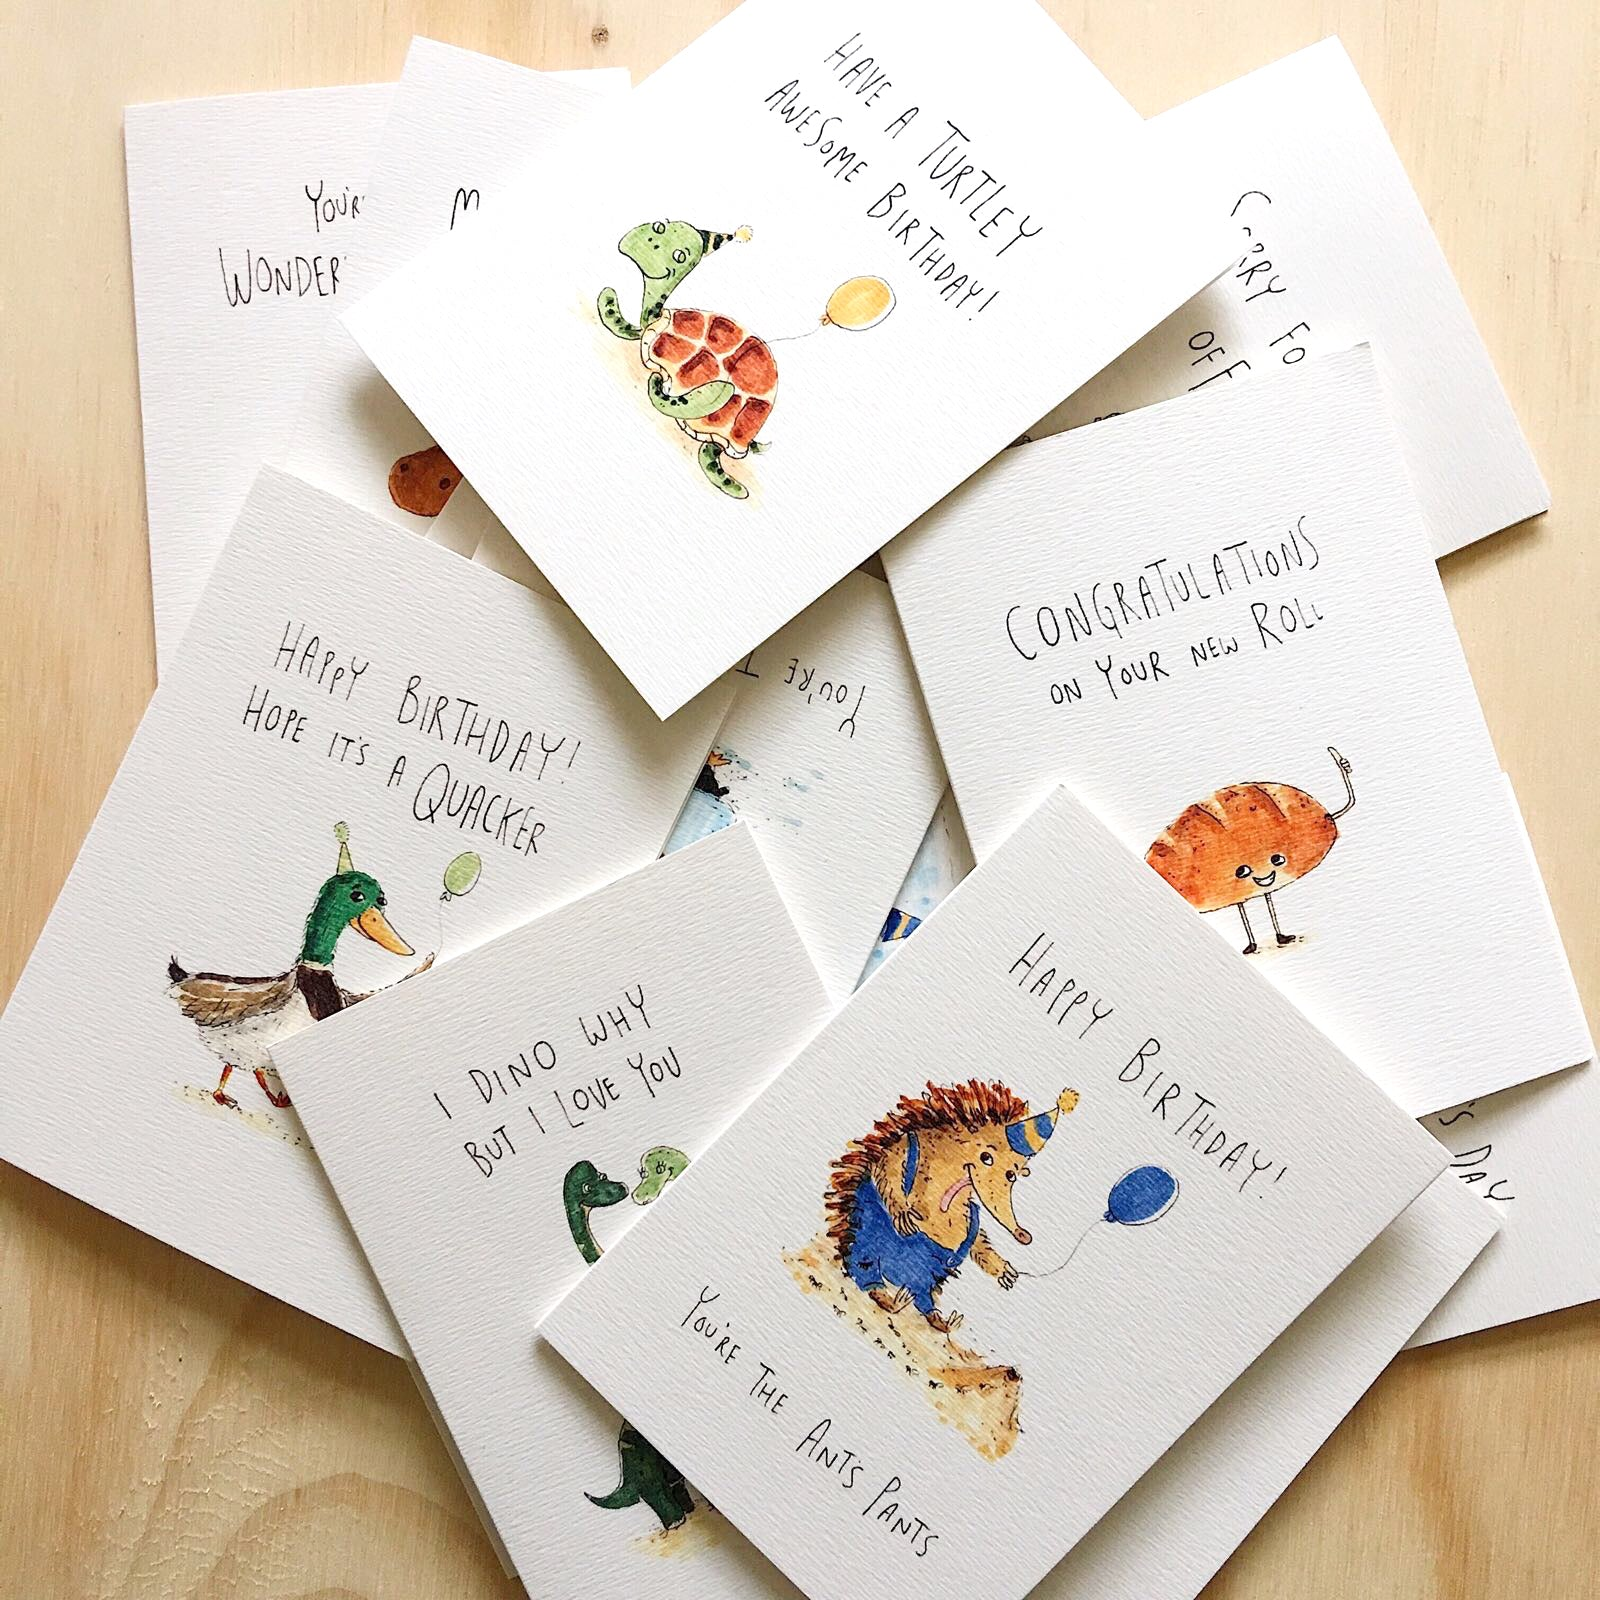 Bulk Bundle - 10 pack of any card - Well Drawn